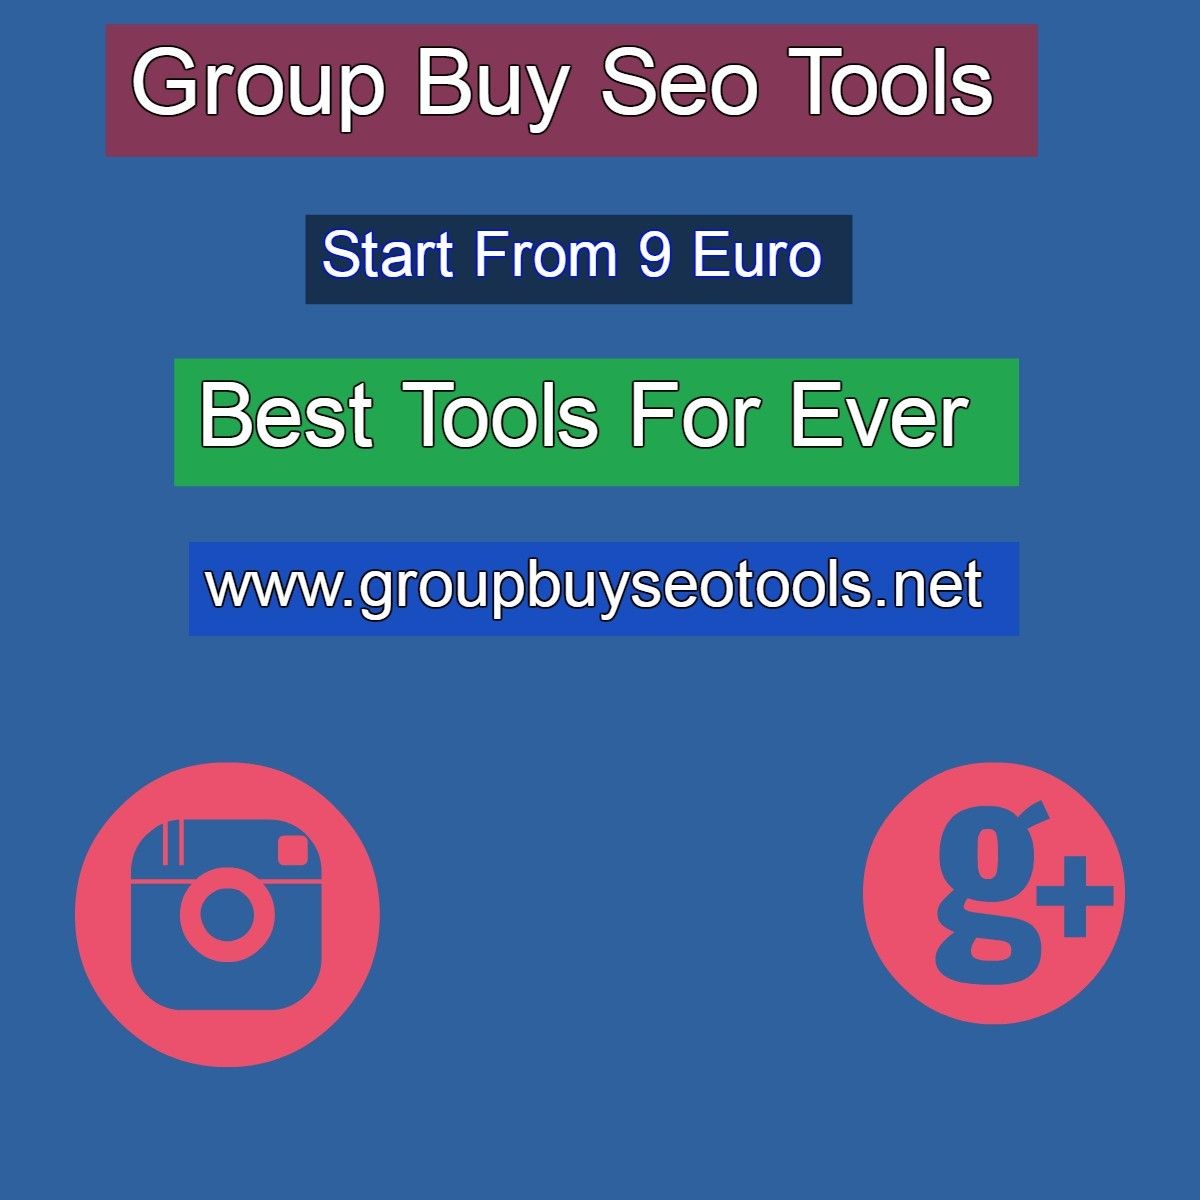 Pin by James Thornhill on Group Buy Seo Tools | Best seo